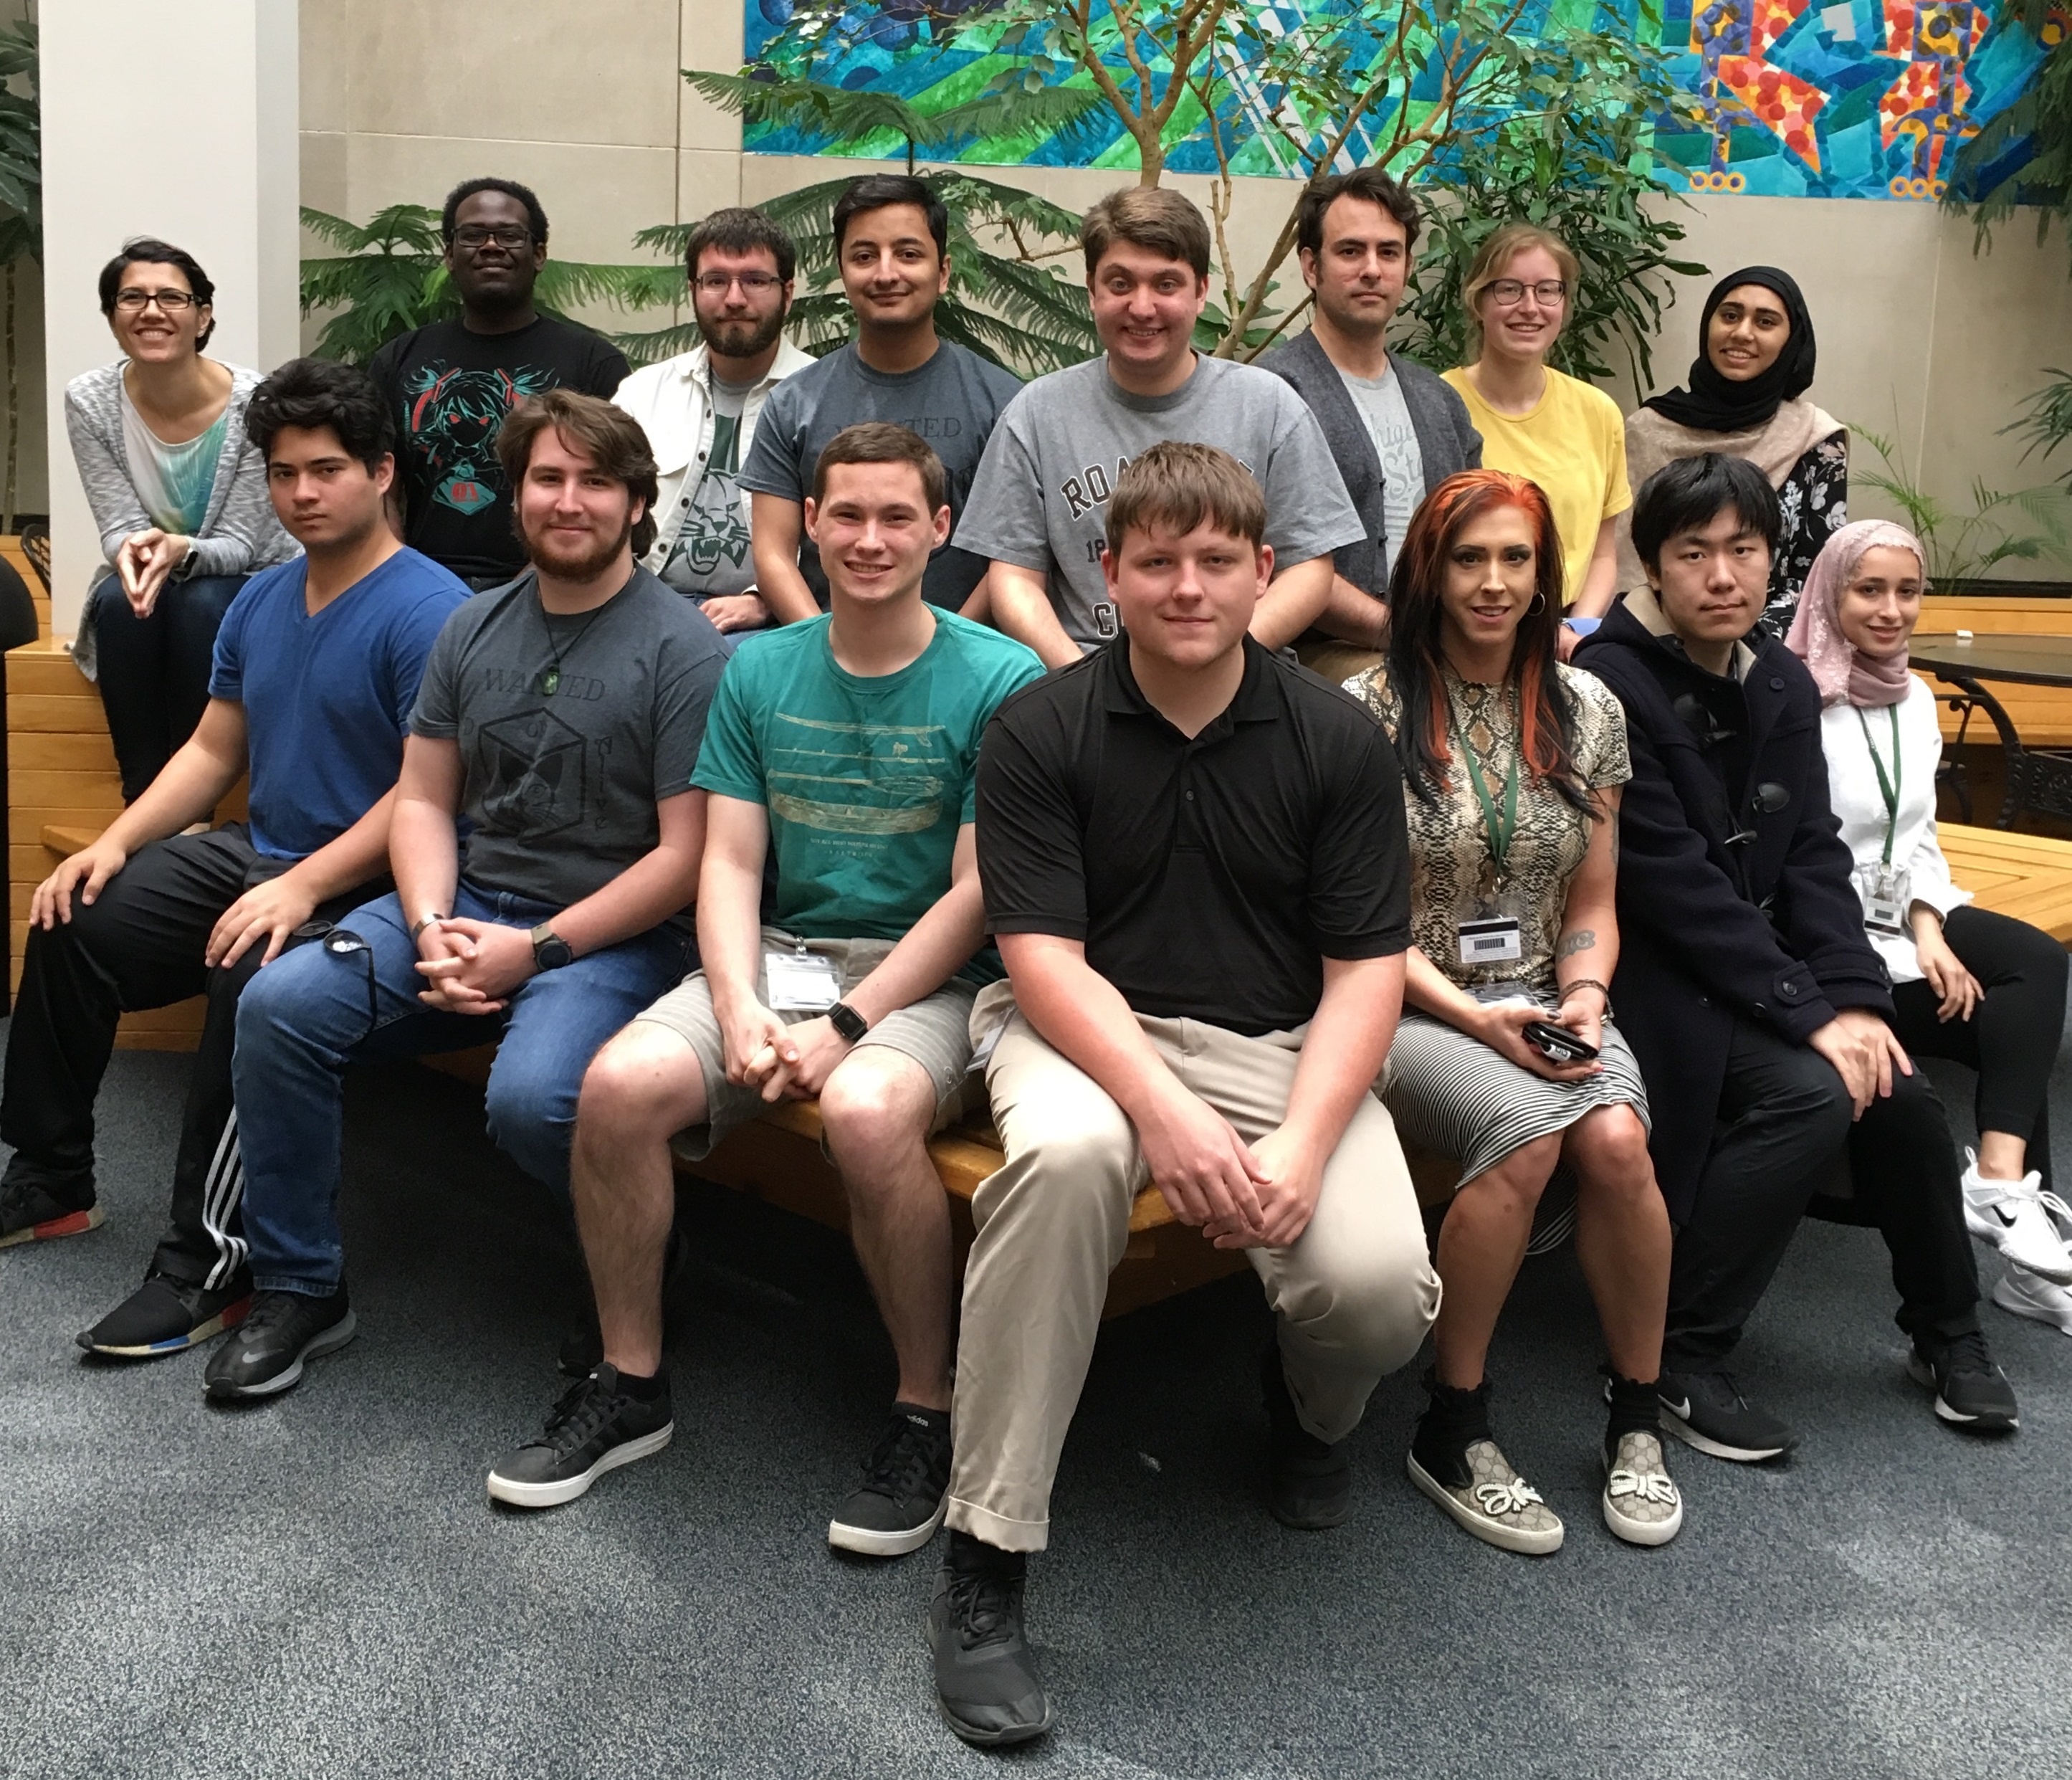 The National Superconducting Cyclotron Laboratory hosted the 2019 Nuclear Science Summer School (NS3) from 12-18 May. This is the fourth year for the annual educational event.